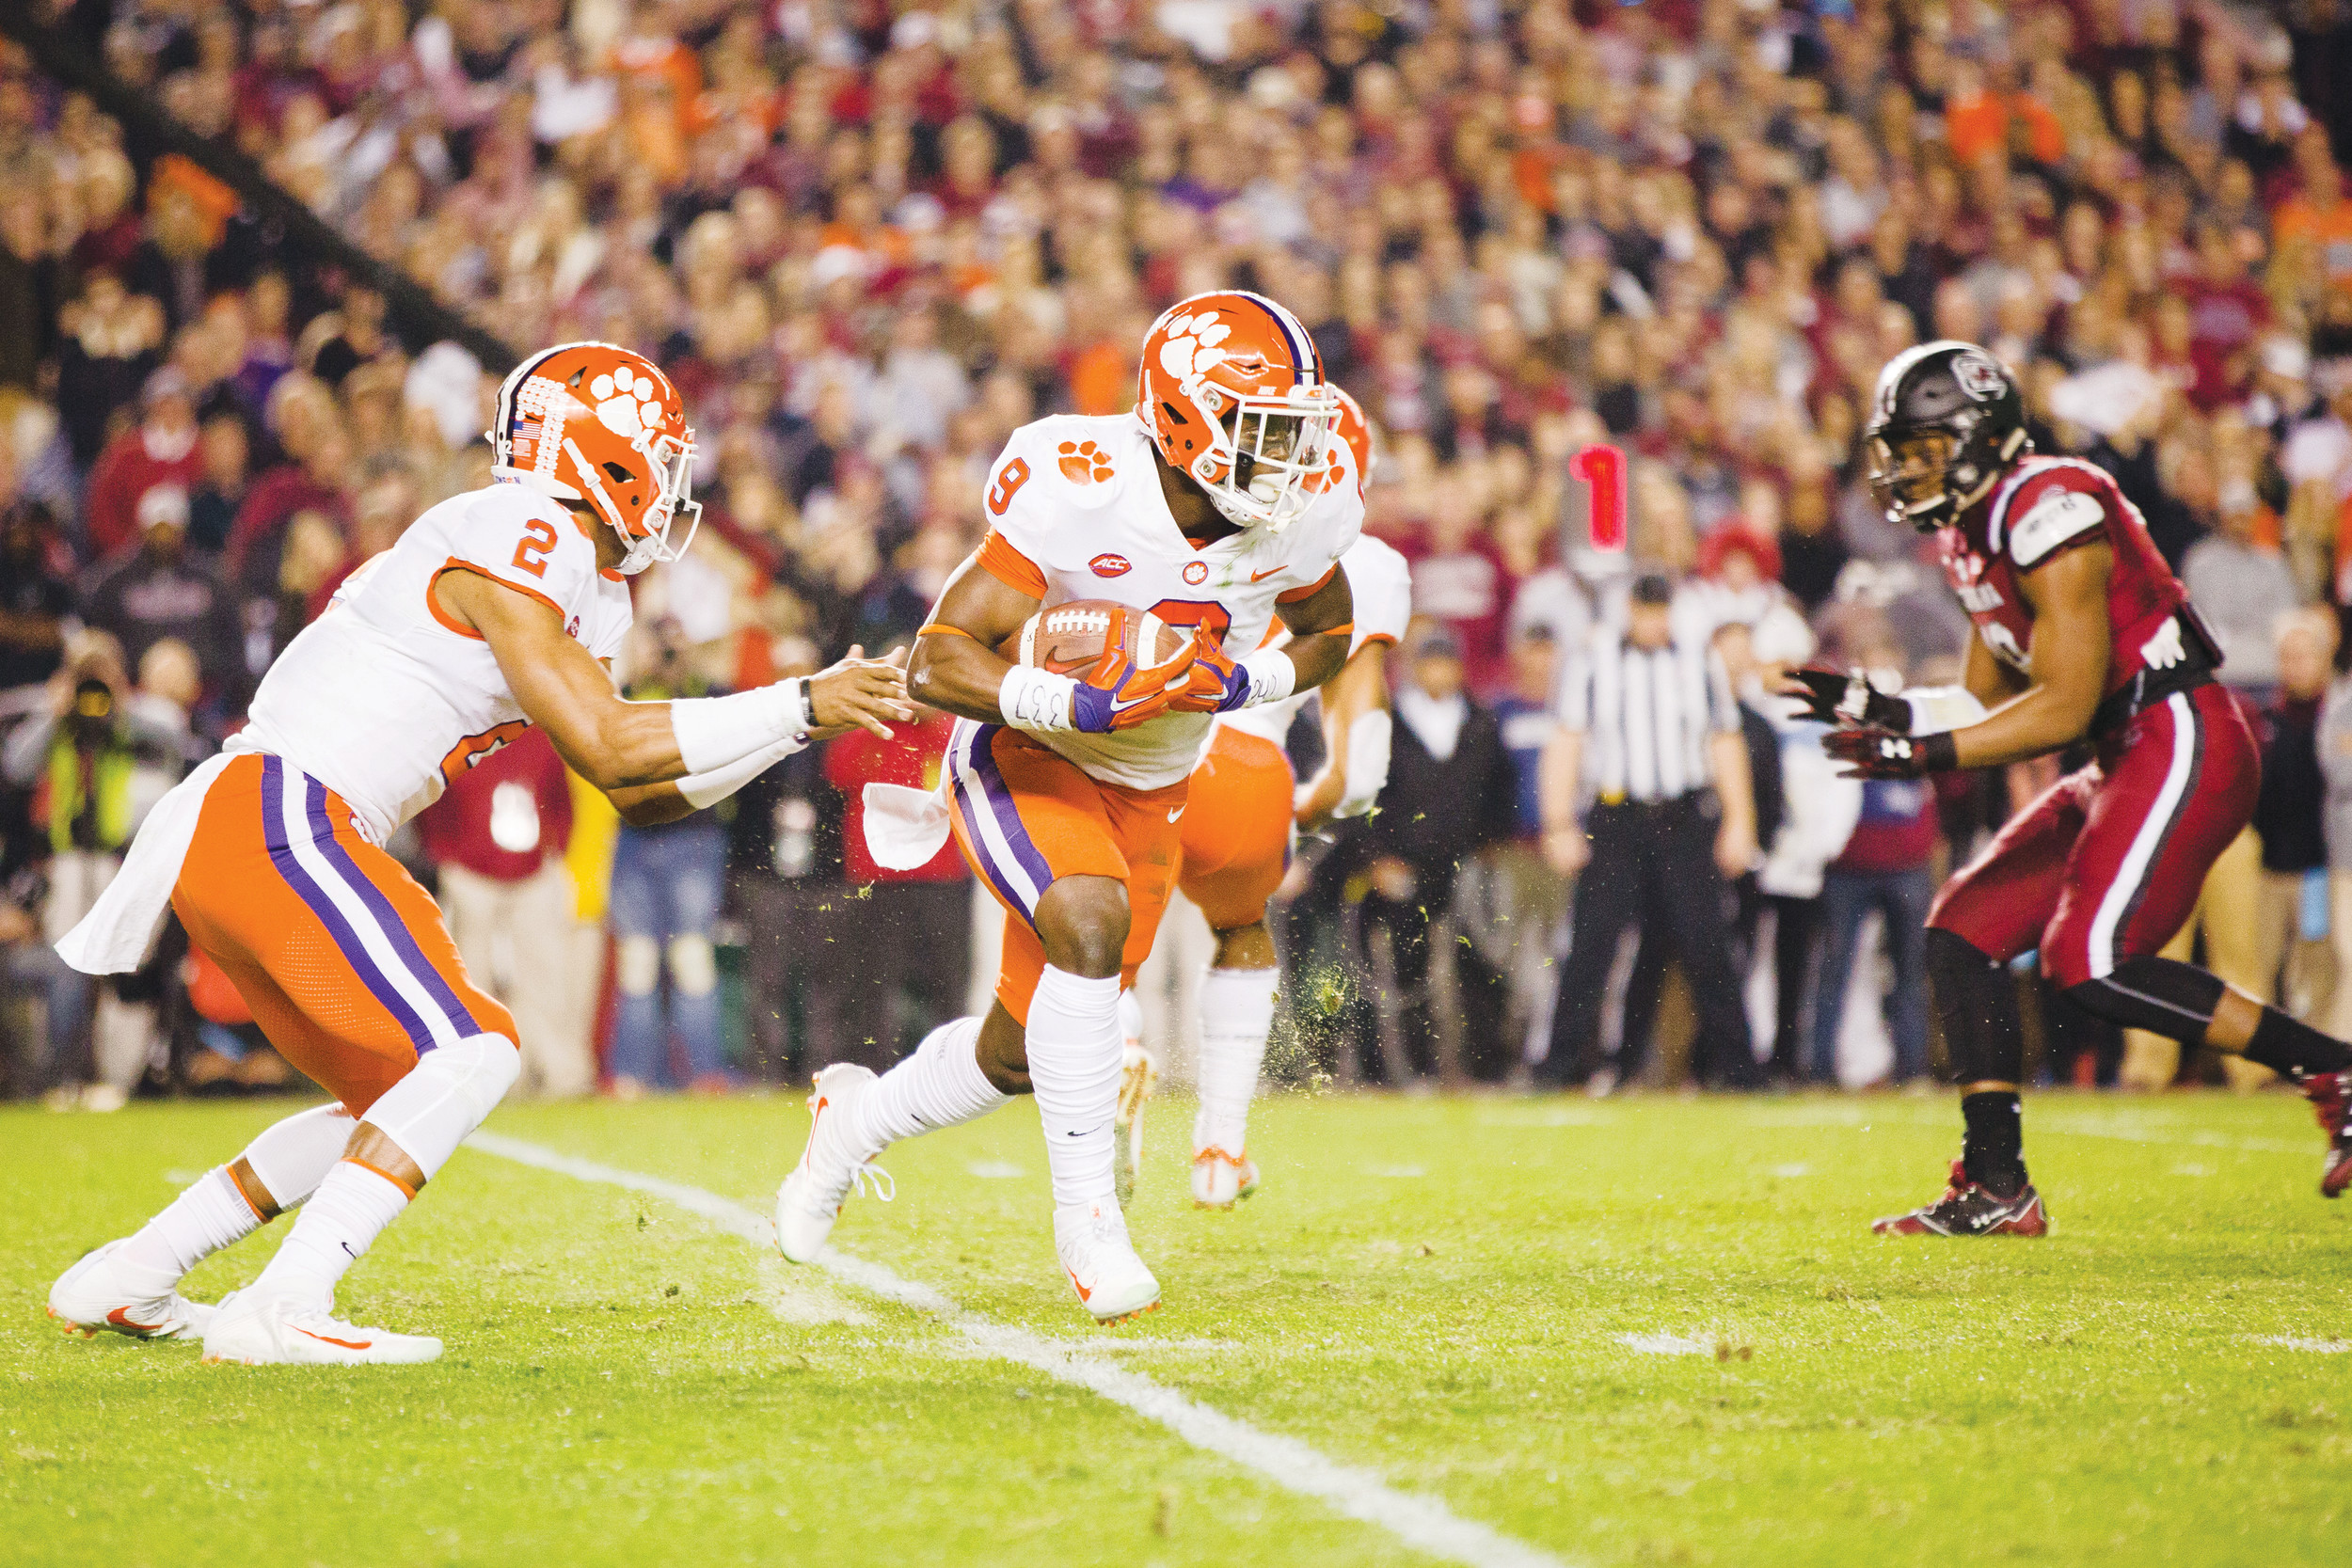 Clemson true freshman running back Travis Etienne has had a tremendous season for the Tigers after taking over for Wayne Gallman. Clemson faces Alabama in the Sugar Bowl on Monday in a College Football Playoff national semifinal game.